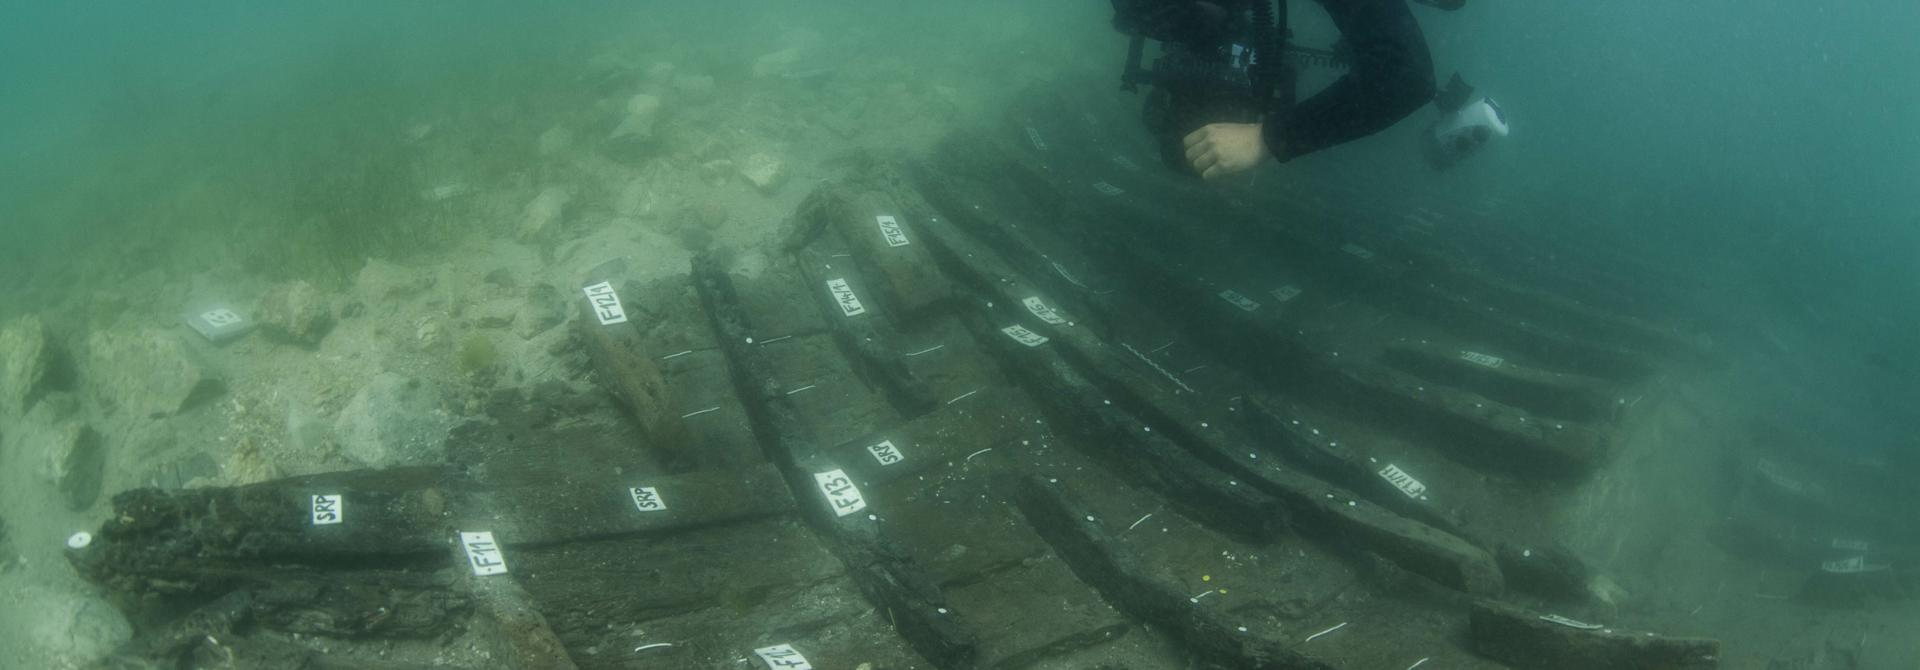 Trstenik - Kaštela-A 1st c. AD cargo ship, sunk on purpose to reinforce the operative waterfront of a villa in the ager of ancient Salona, the capital of the Roman province of Dalmatia. (Photo: Božo Vukičević)